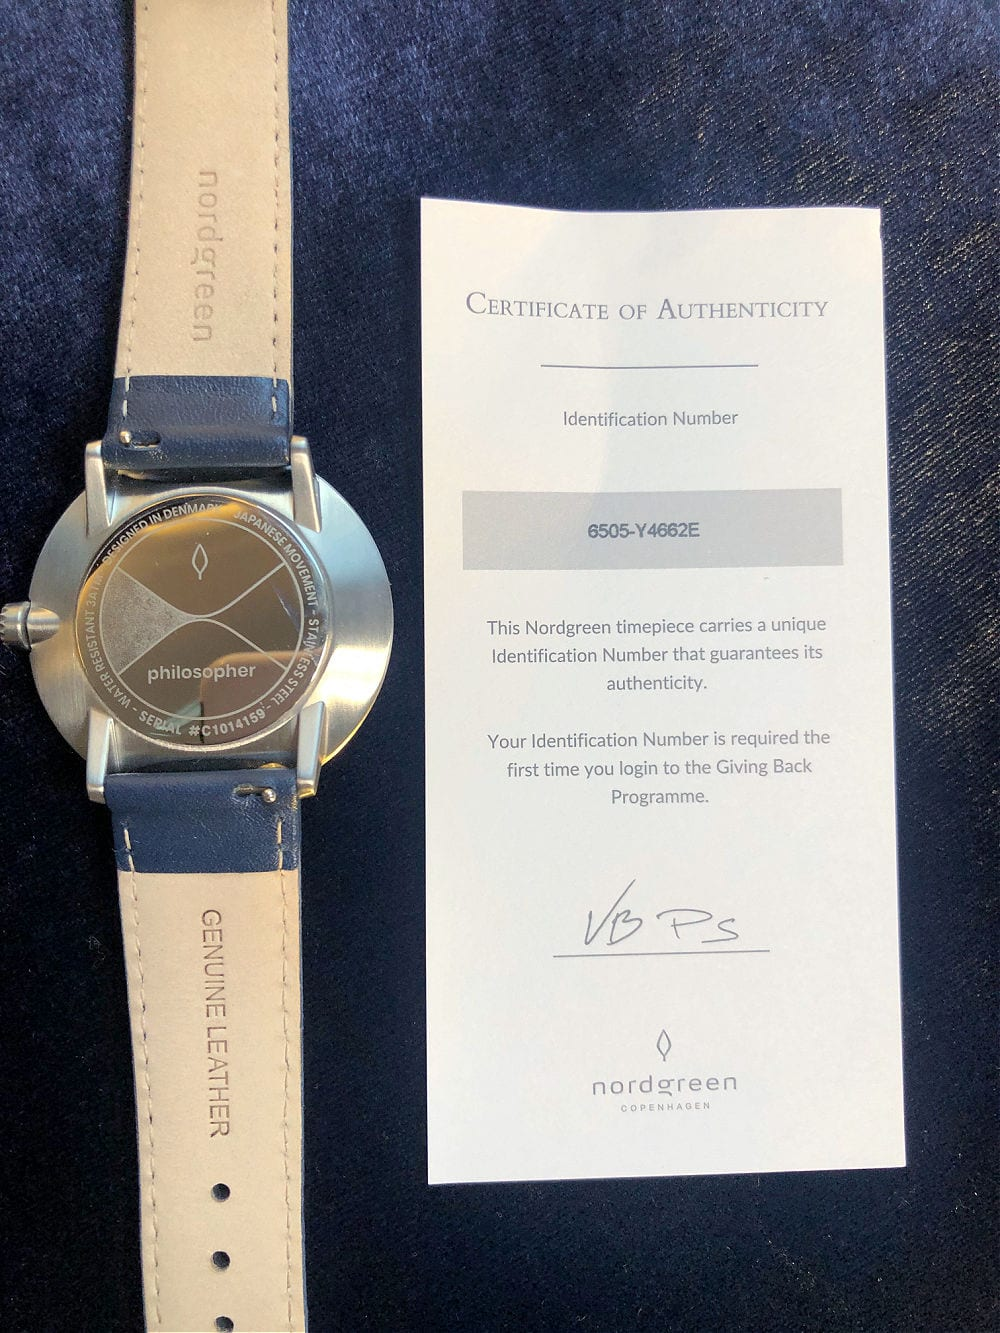 serial number and back of nordgreen watch